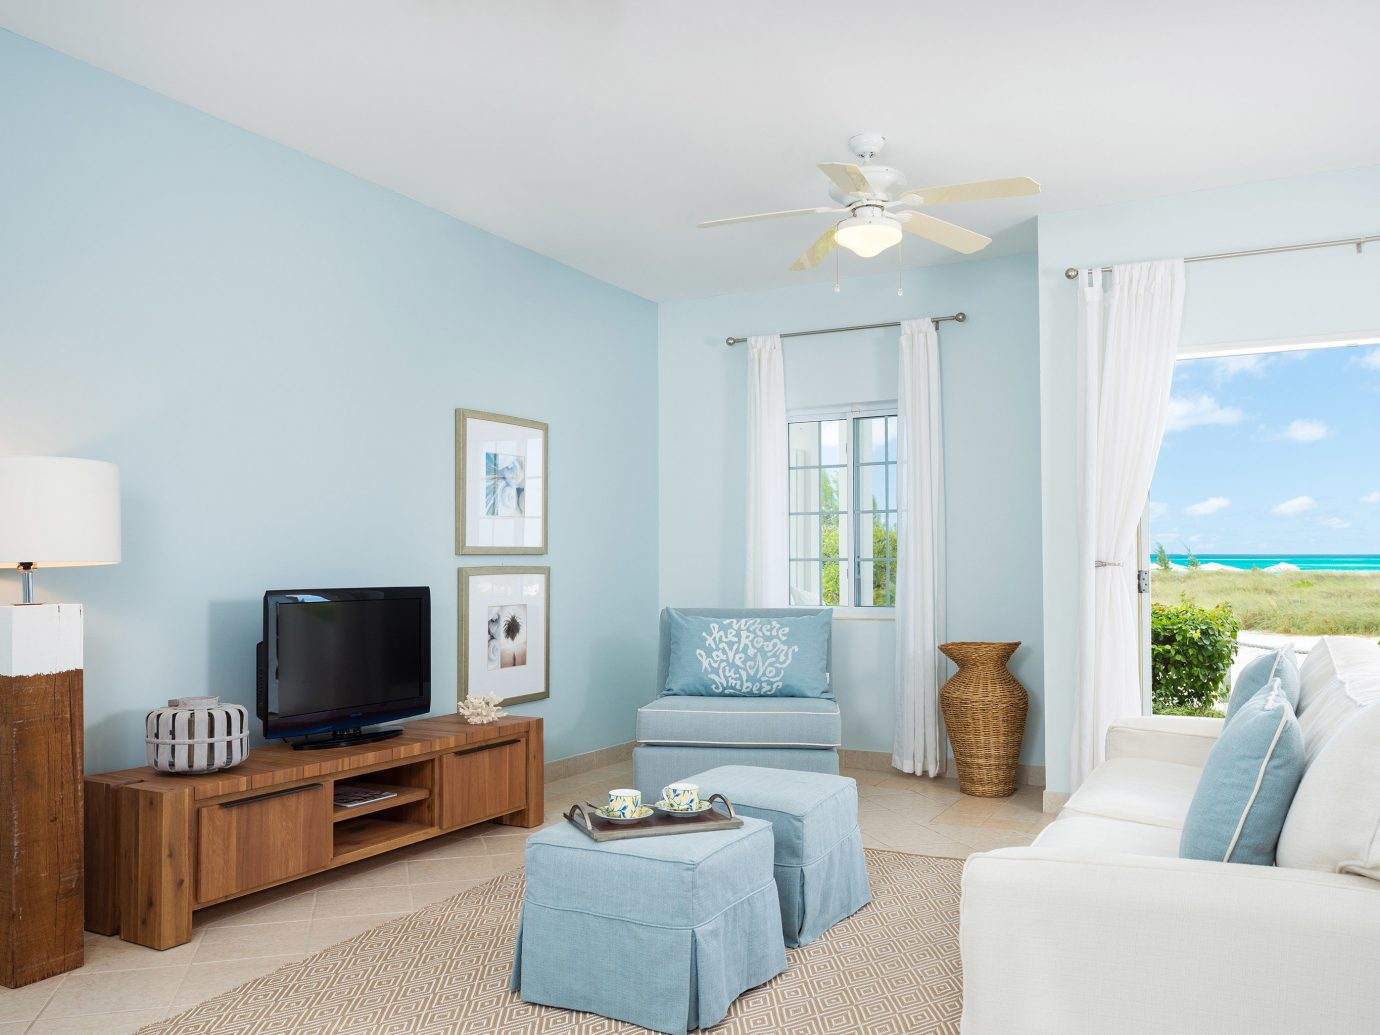 All-Inclusive Resorts Beachfront Boutique caribbean Living Luxury Resort indoor wall room floor sofa ceiling property Bedroom living room furniture home house real estate estate interior design cottage apartment flat Villa decorated